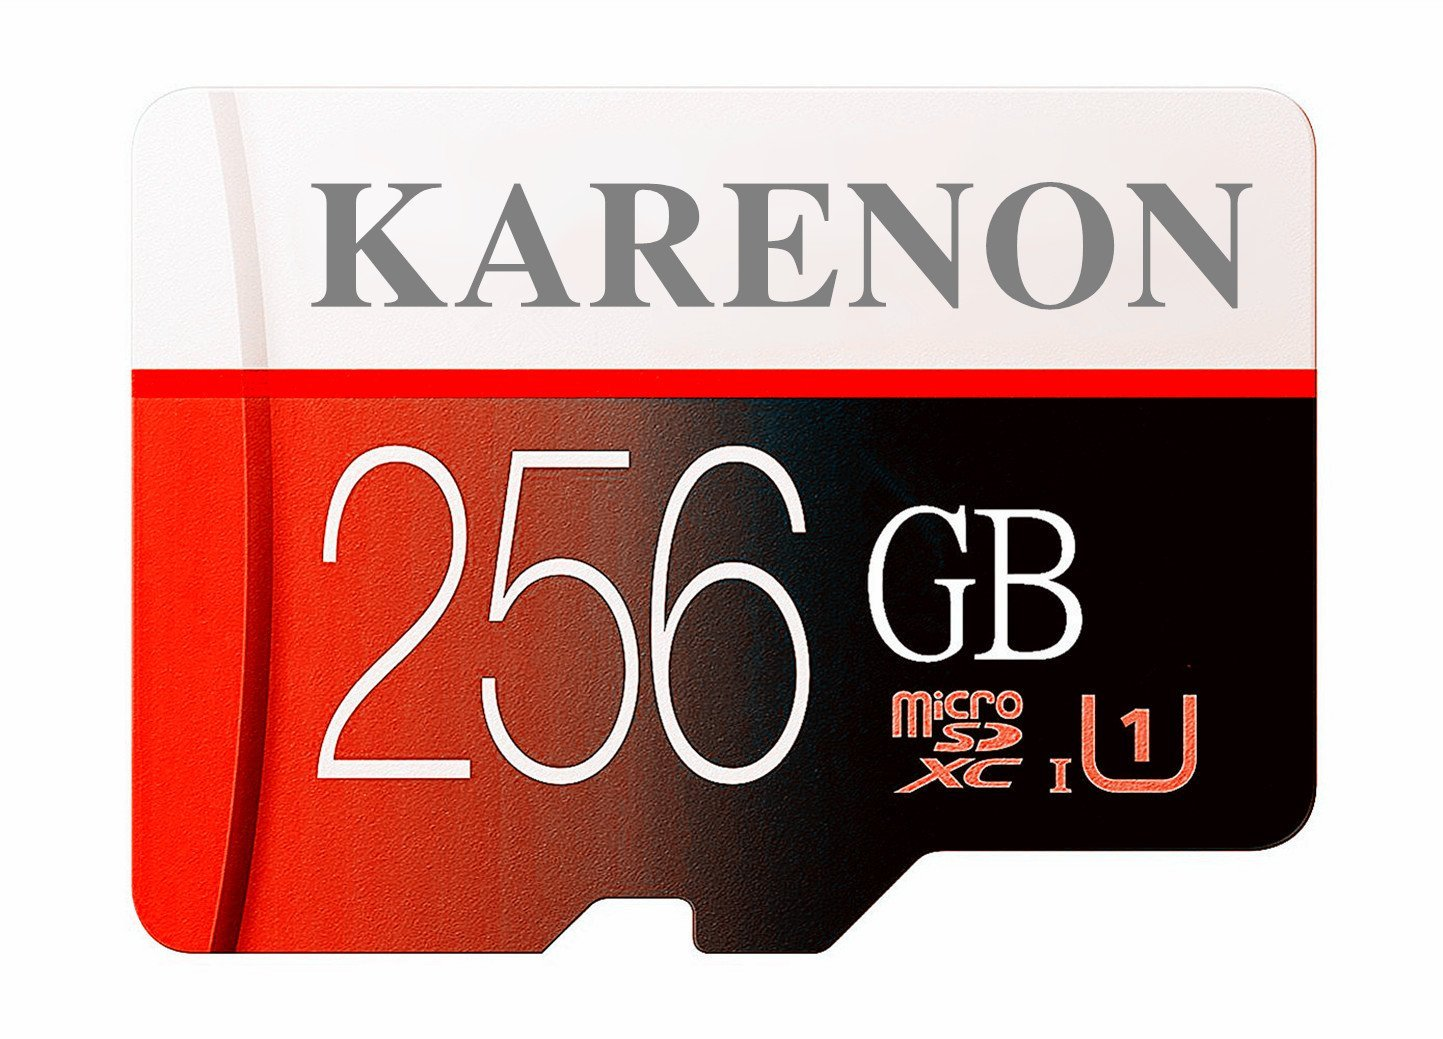 Karenon 256GB Micro SD SDXC Memory Card High Speed Class 10 with Micro SD Adapter(D49-KR256)